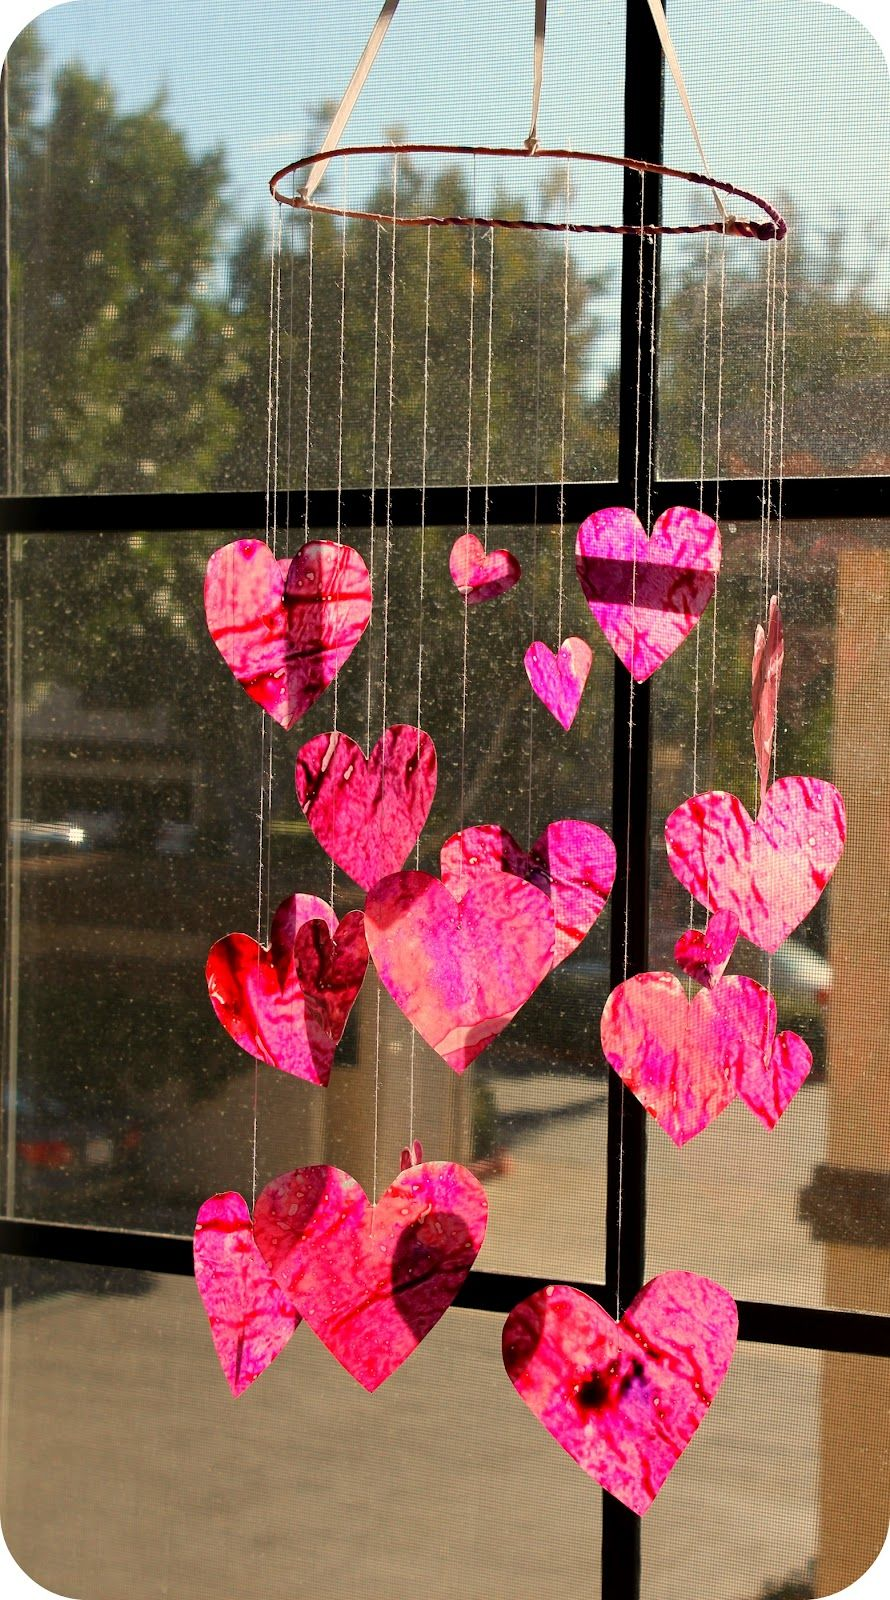 DiY Project: Crayon Waxed Paper Stained Glass Heart Mobile for Valentine's Day